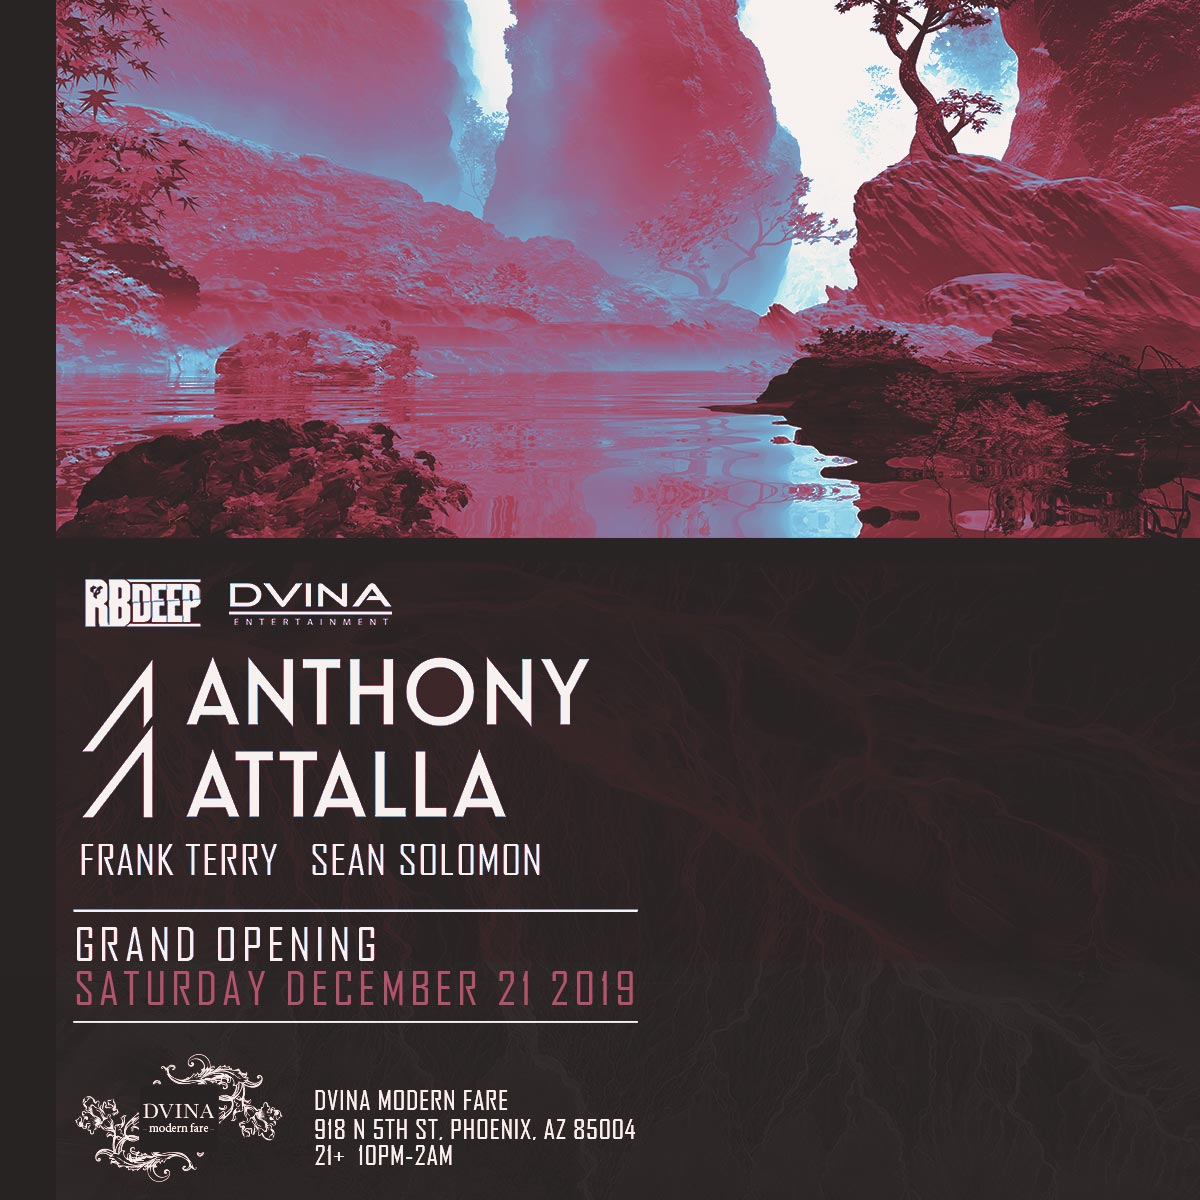 Flyer for Anthony Attalla - Grand Opening